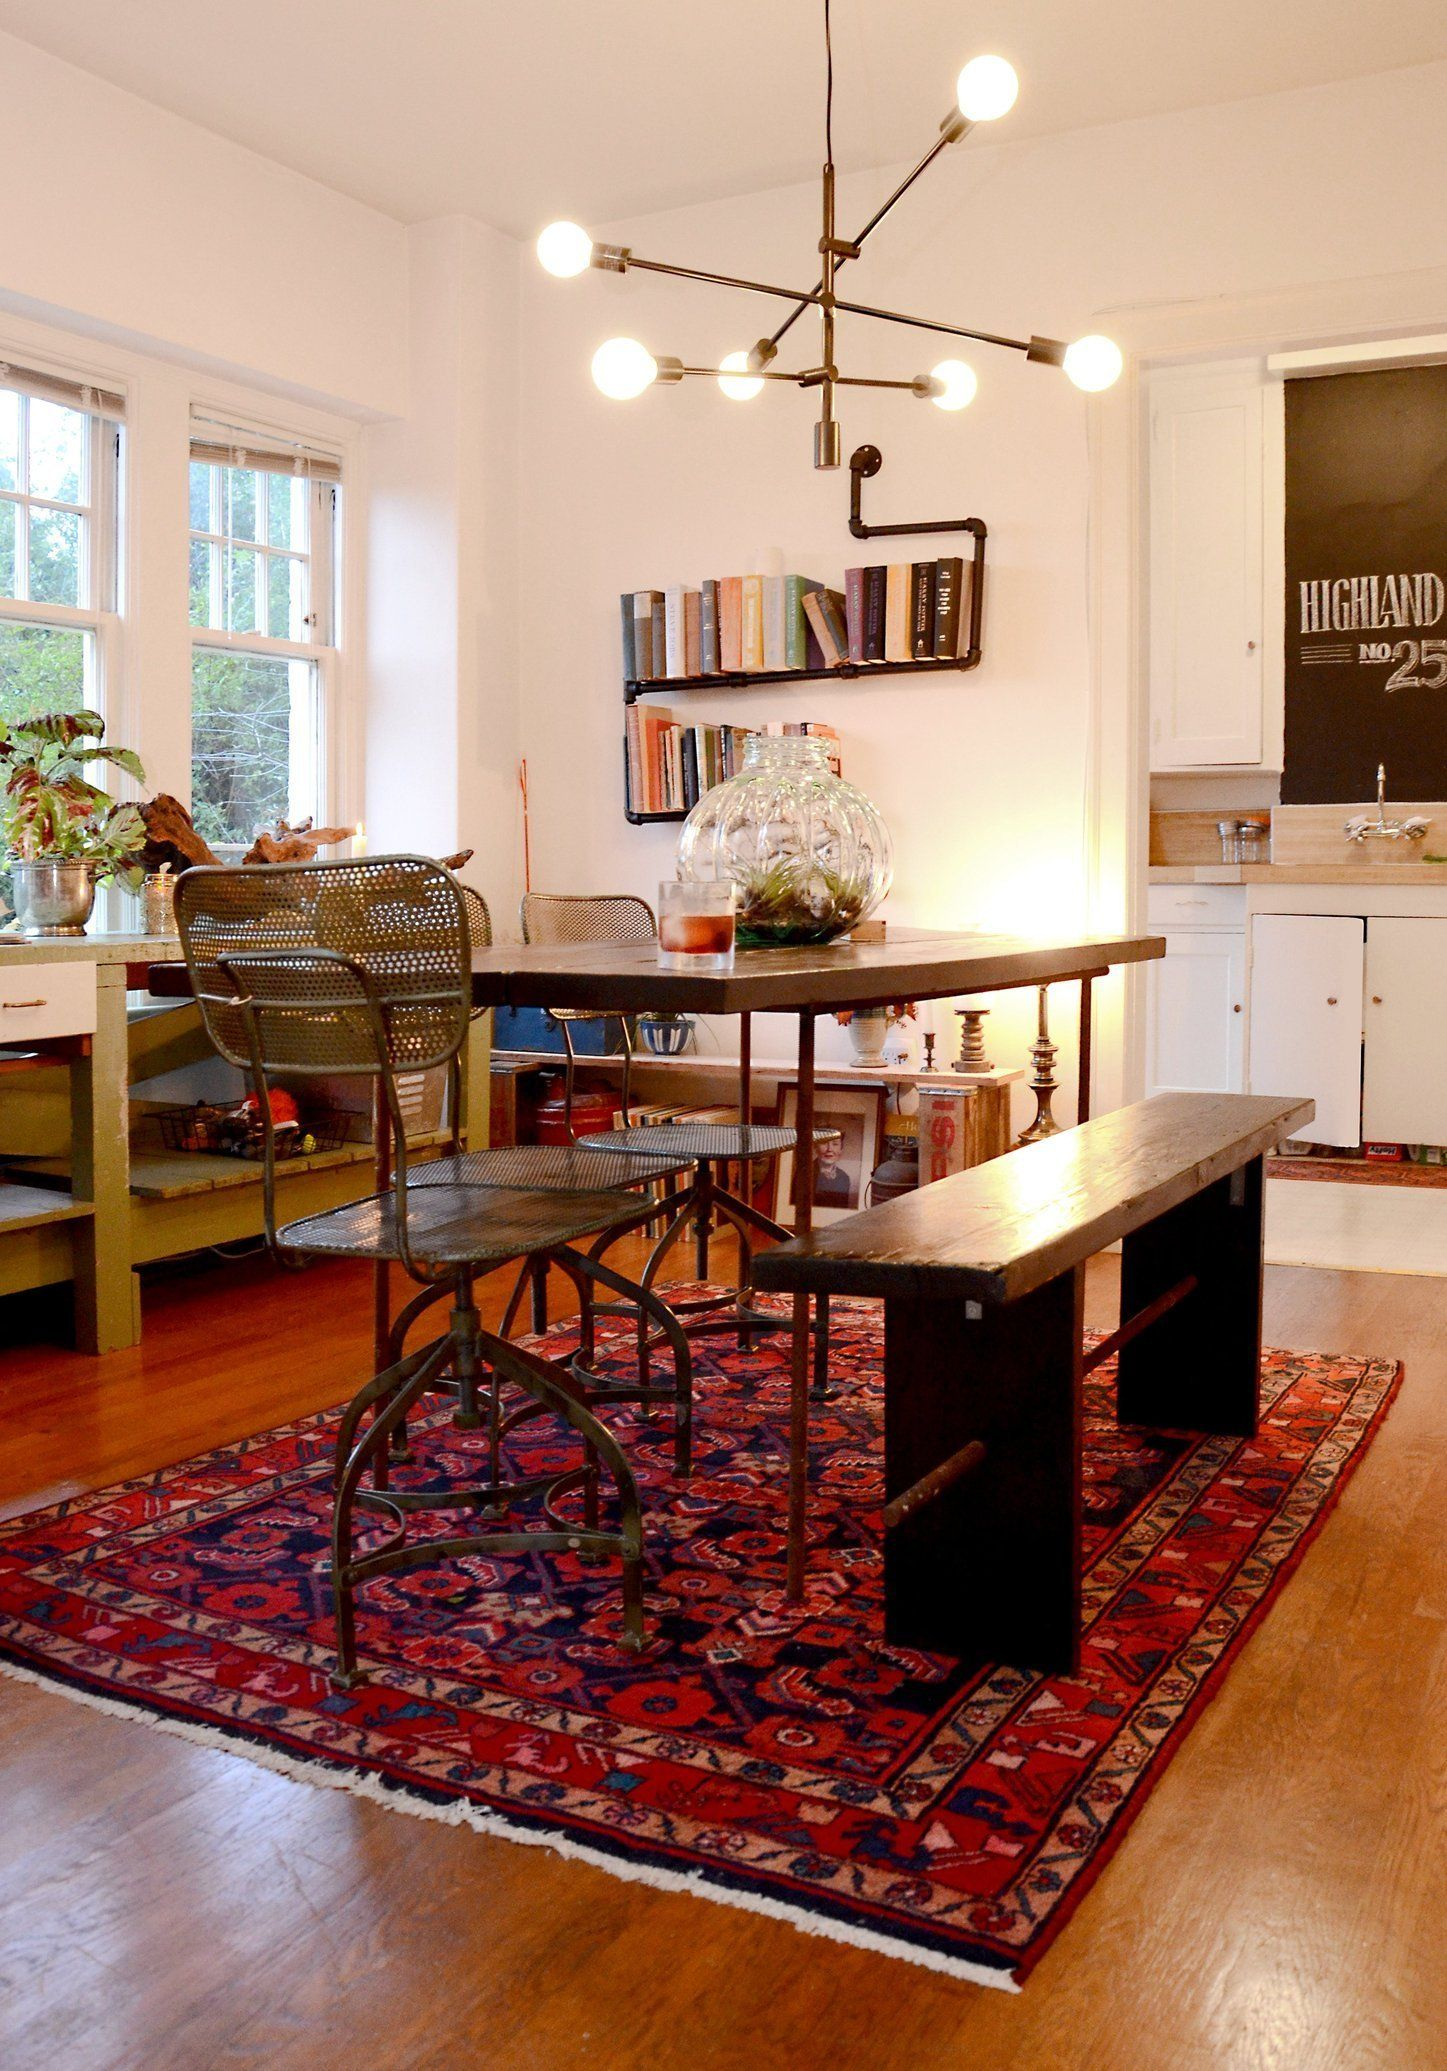 6 Design Ideas For Your Dining Room You Might Not Have Tried